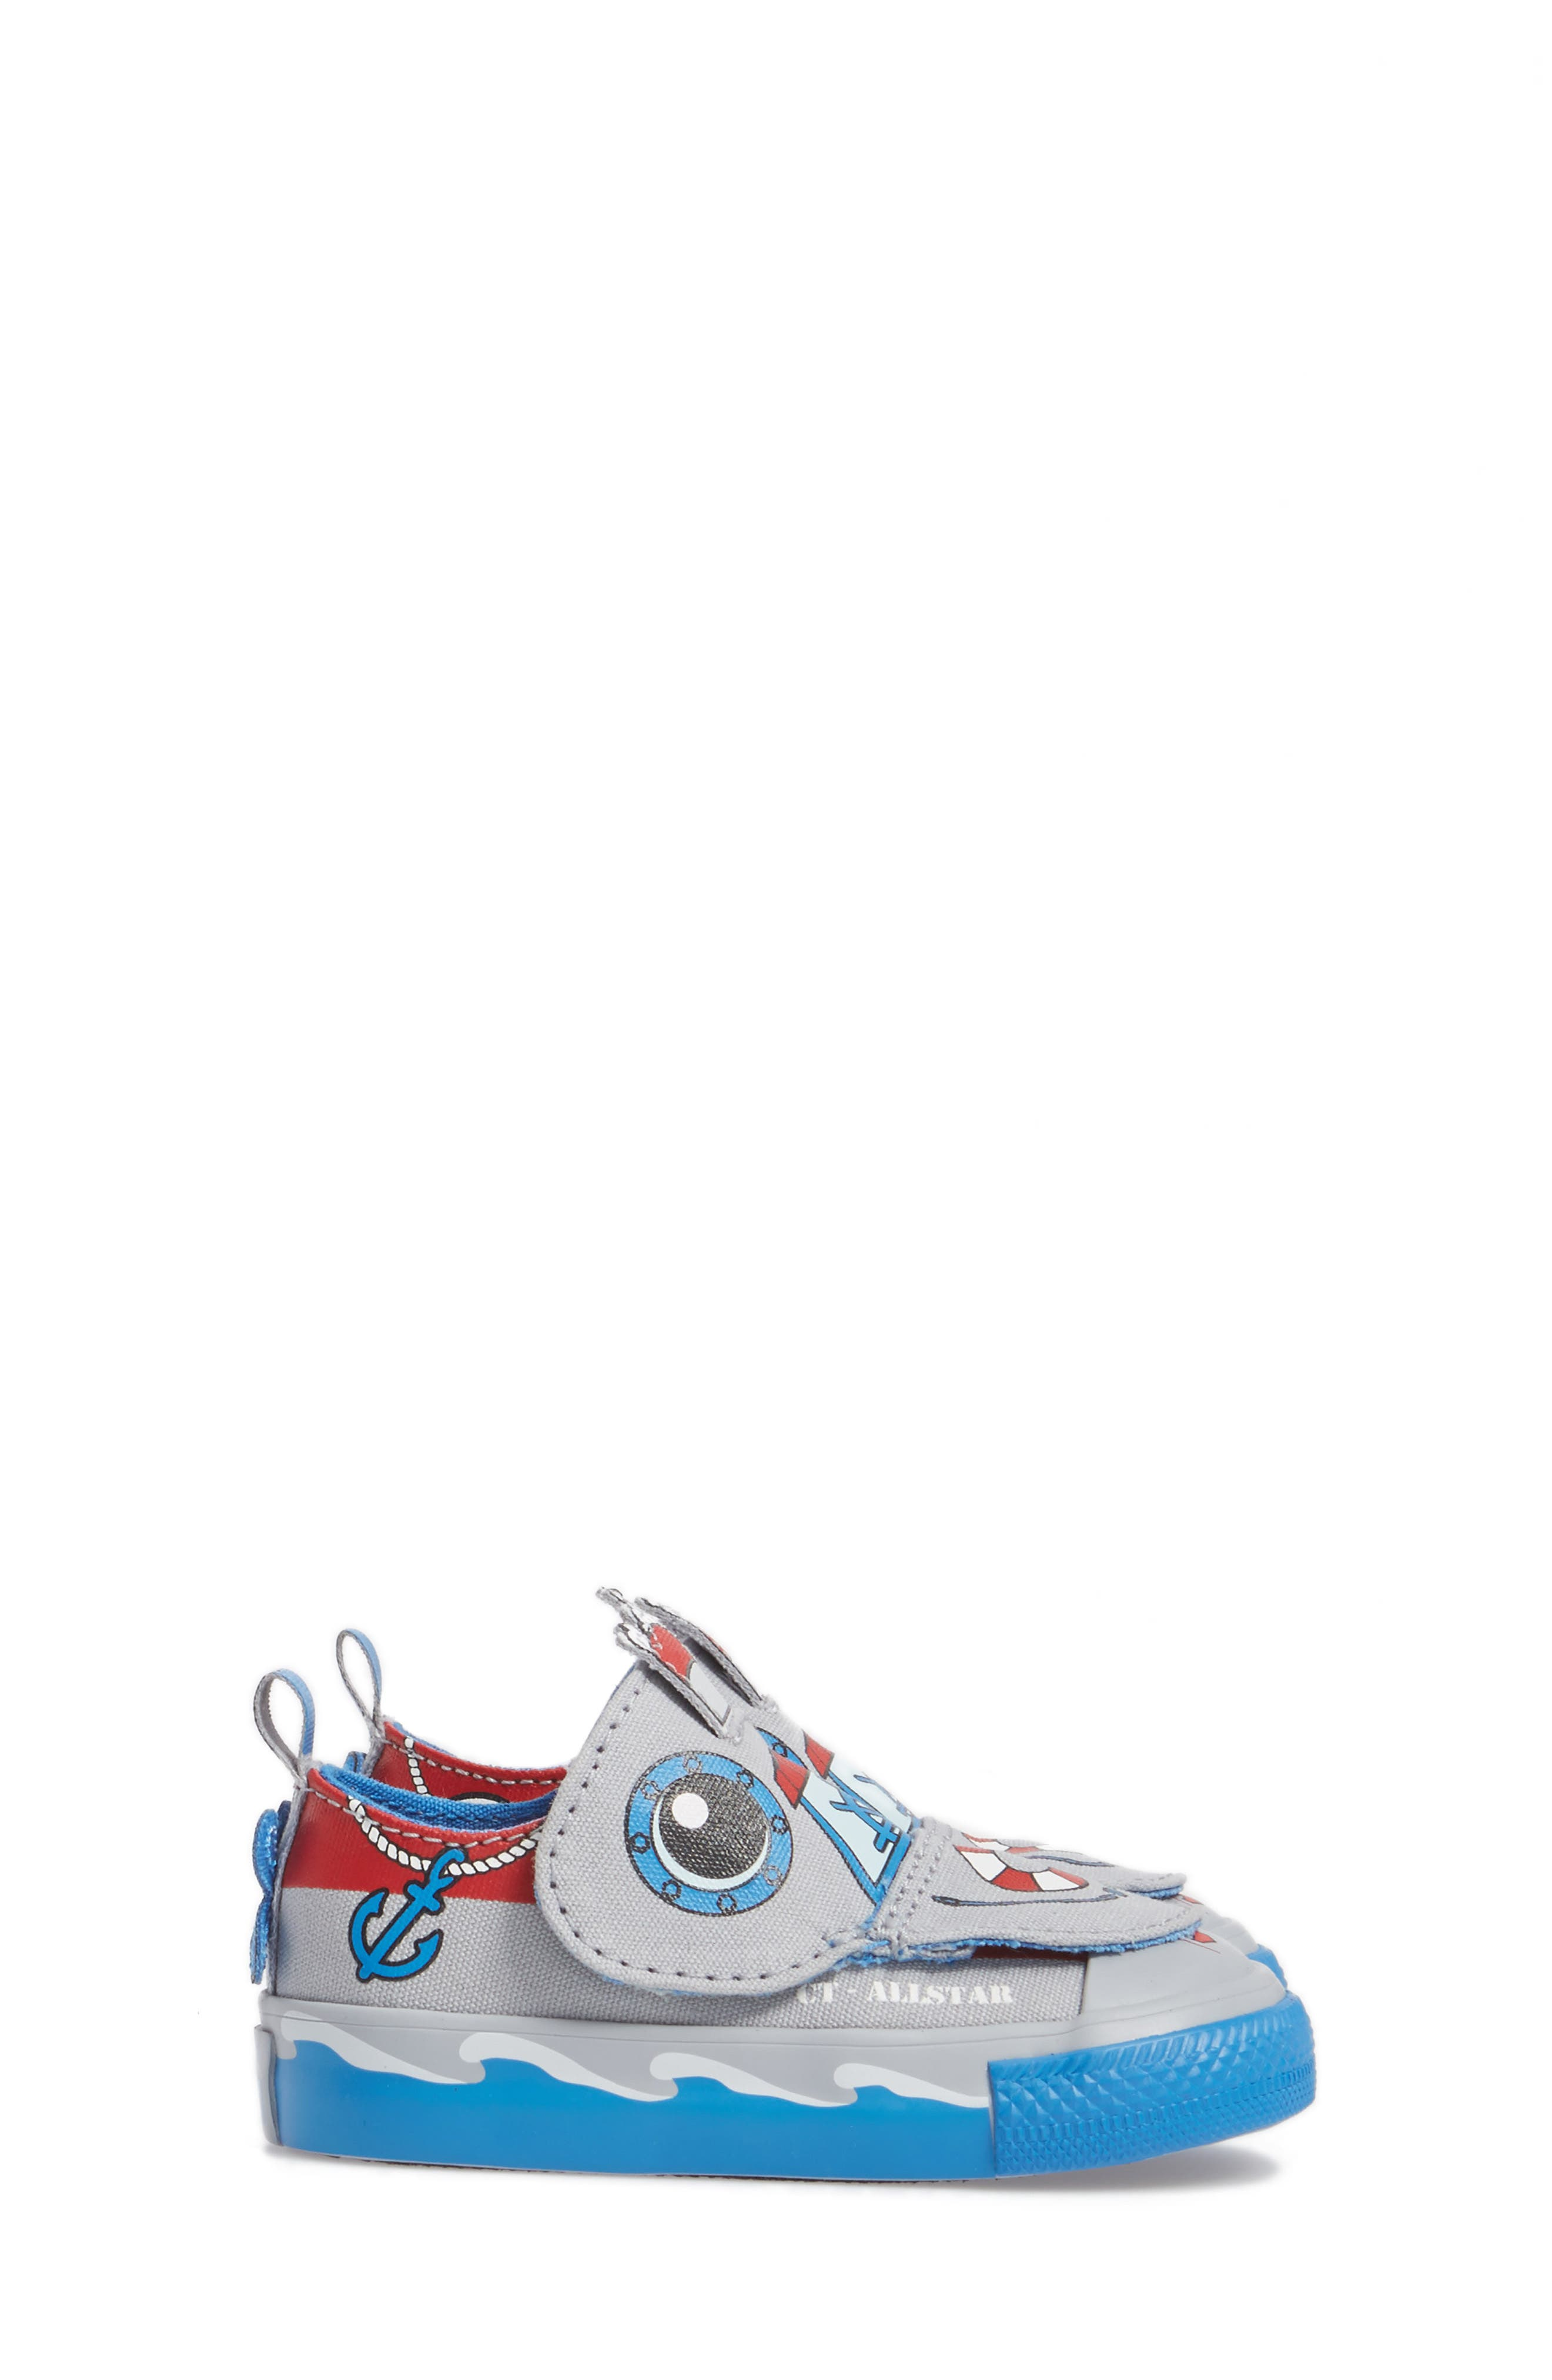 Chuck Taylor<sup>®</sup> All Star<sup>®</sup> Creatures Slip-On Sneaker,                             Alternate thumbnail 7, color,